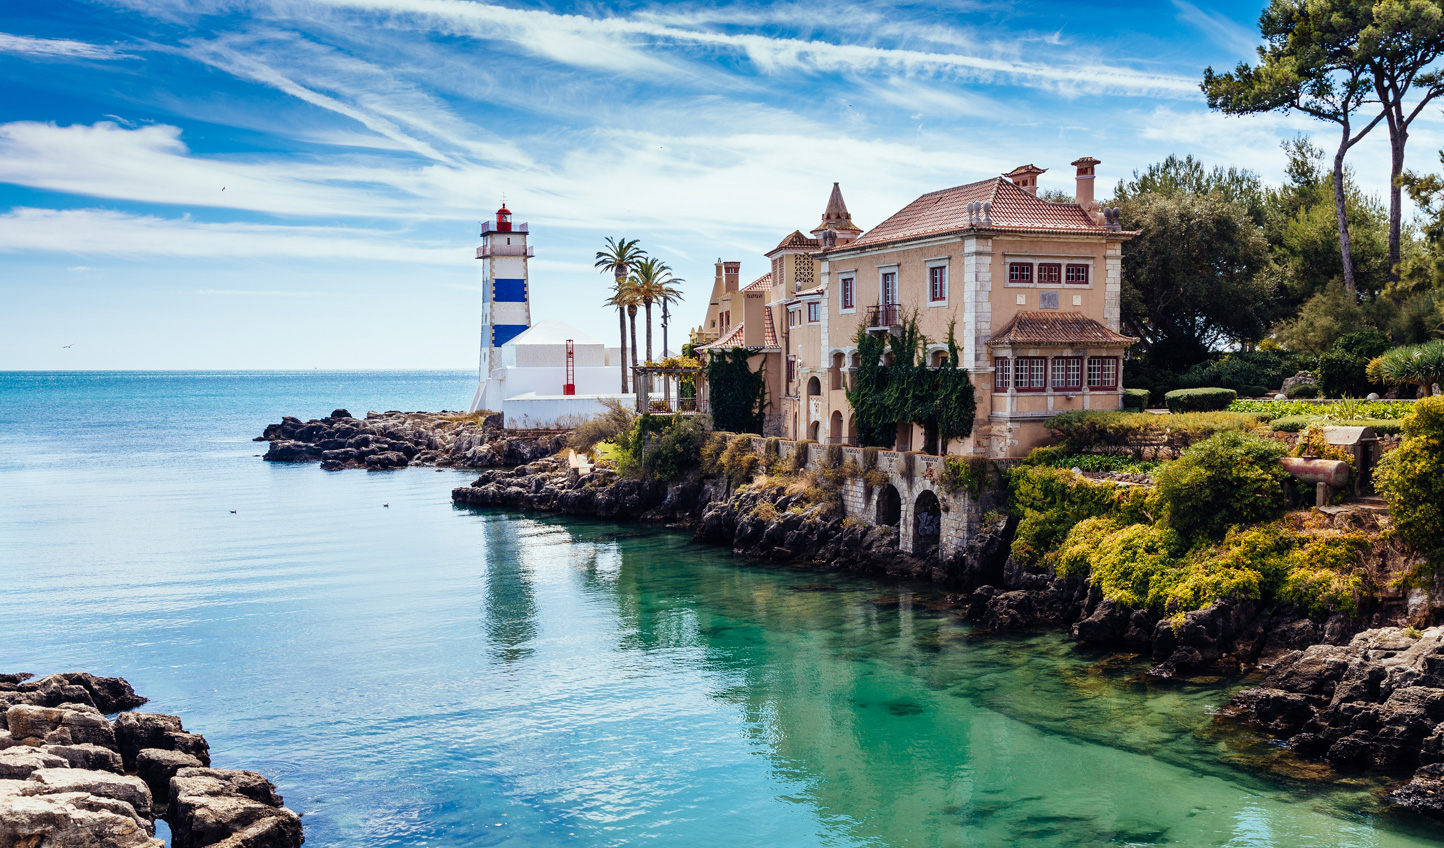 Spend a day in Cascais